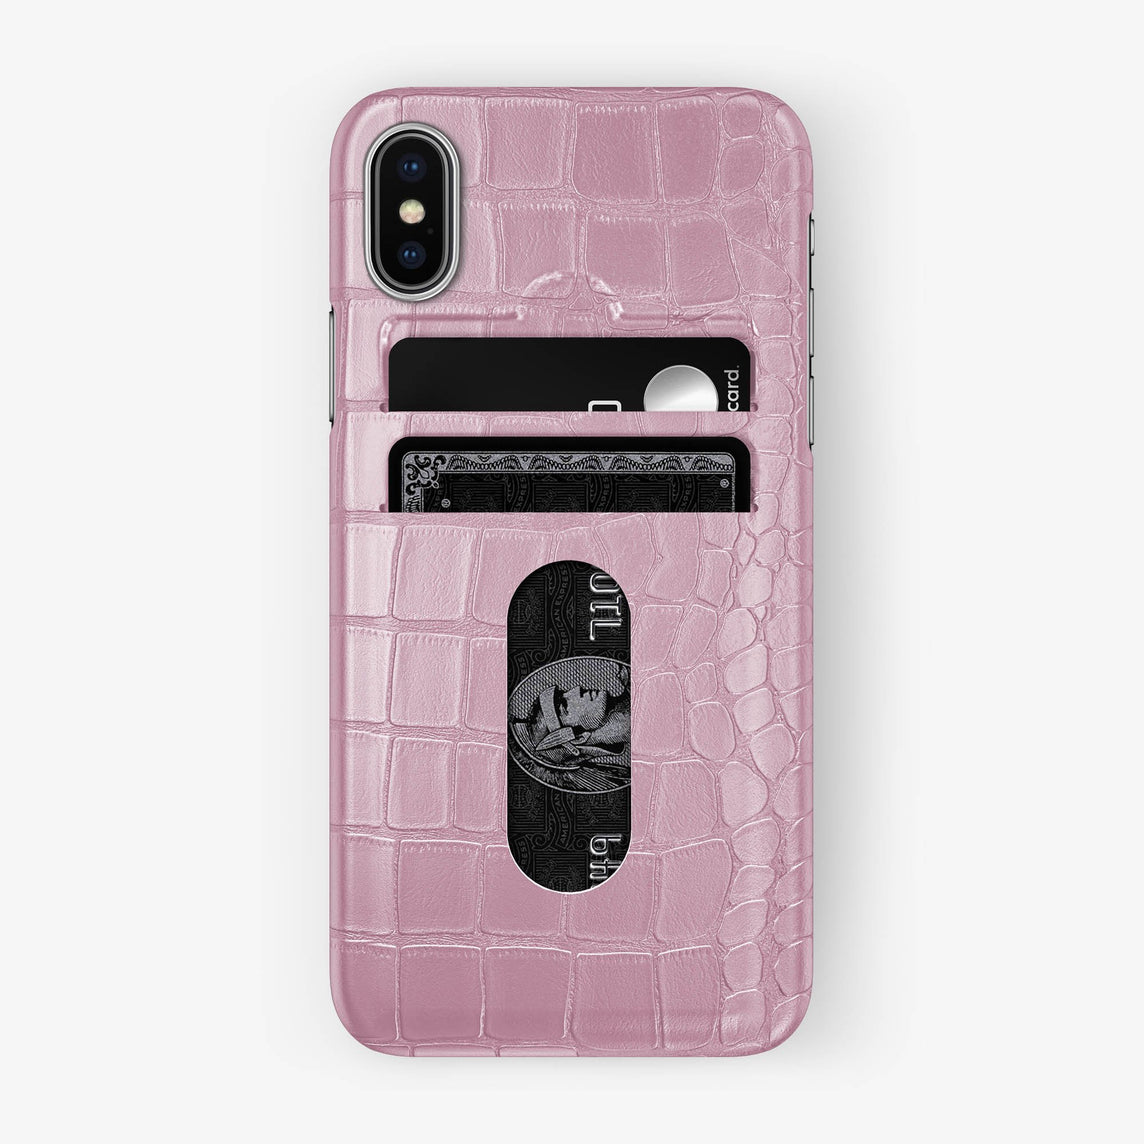 Alligator [iPhone Card Holder Case] [model:iphone-x-case] [colour:pink] [finishing:stainless-steel] - Hadoro